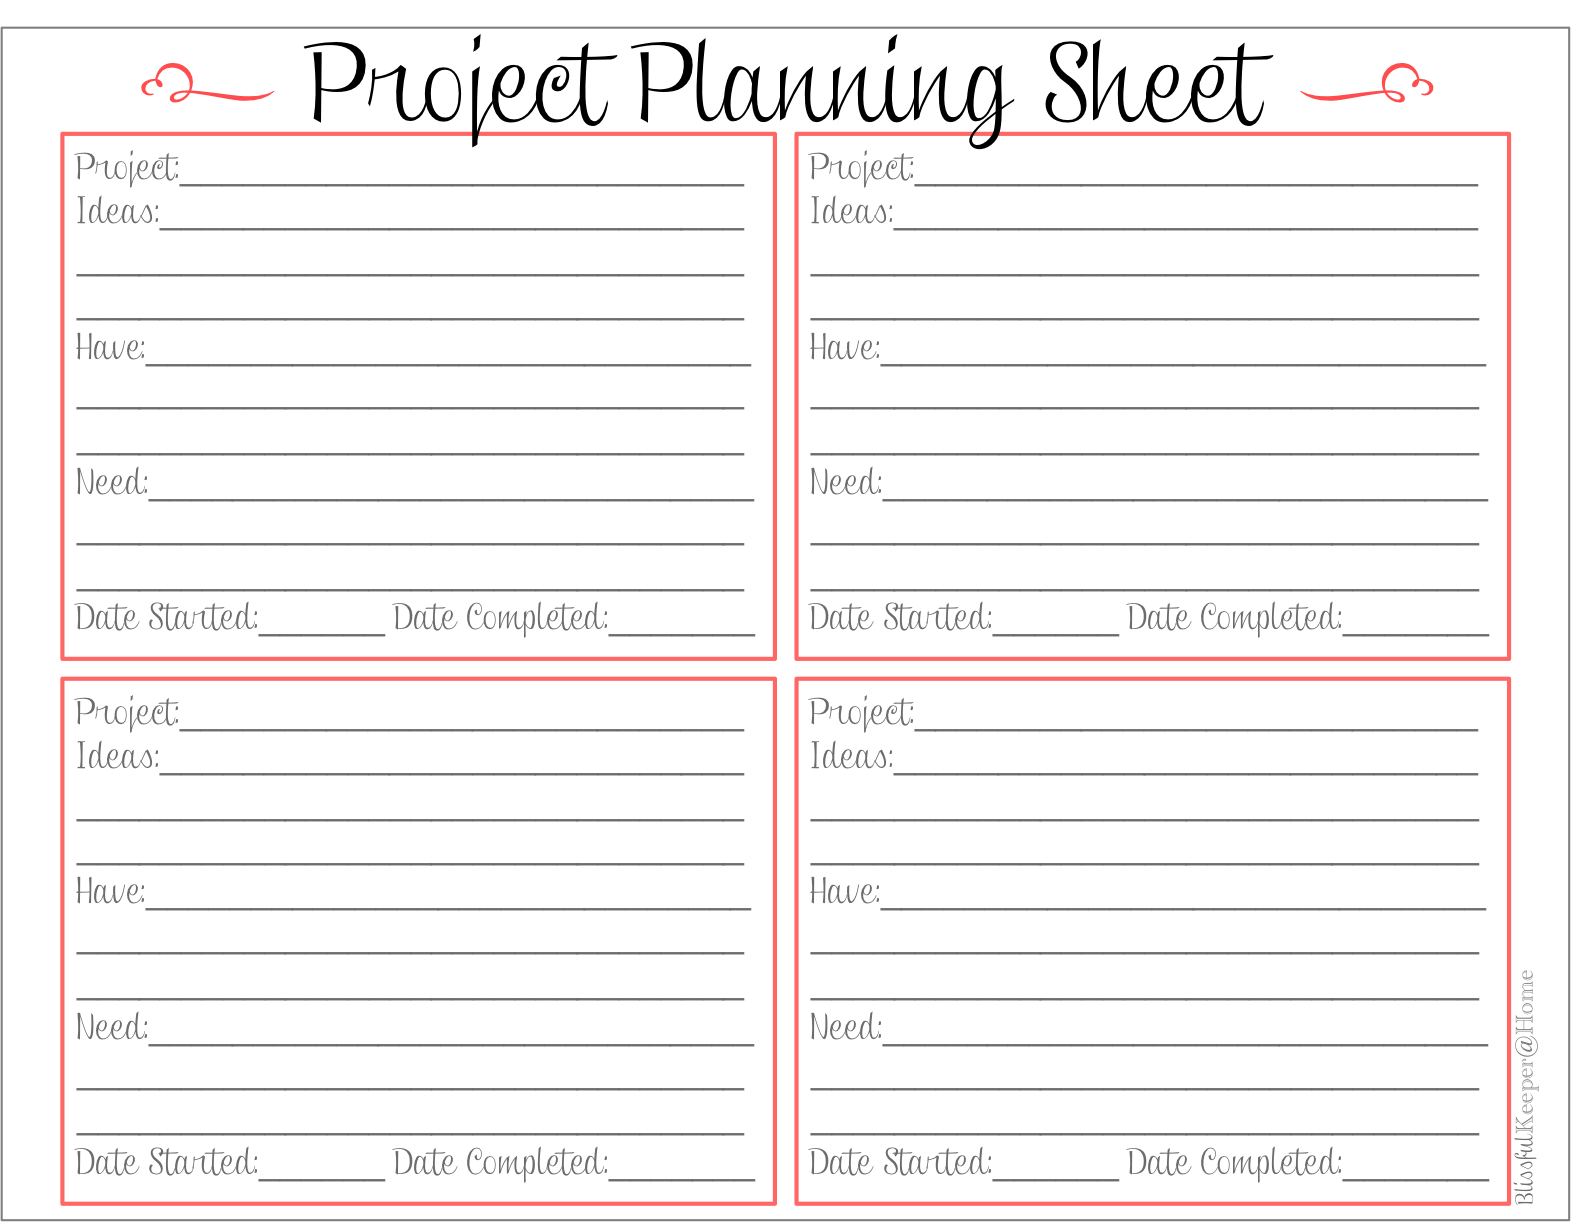 blissful keeper at home project planning sheet